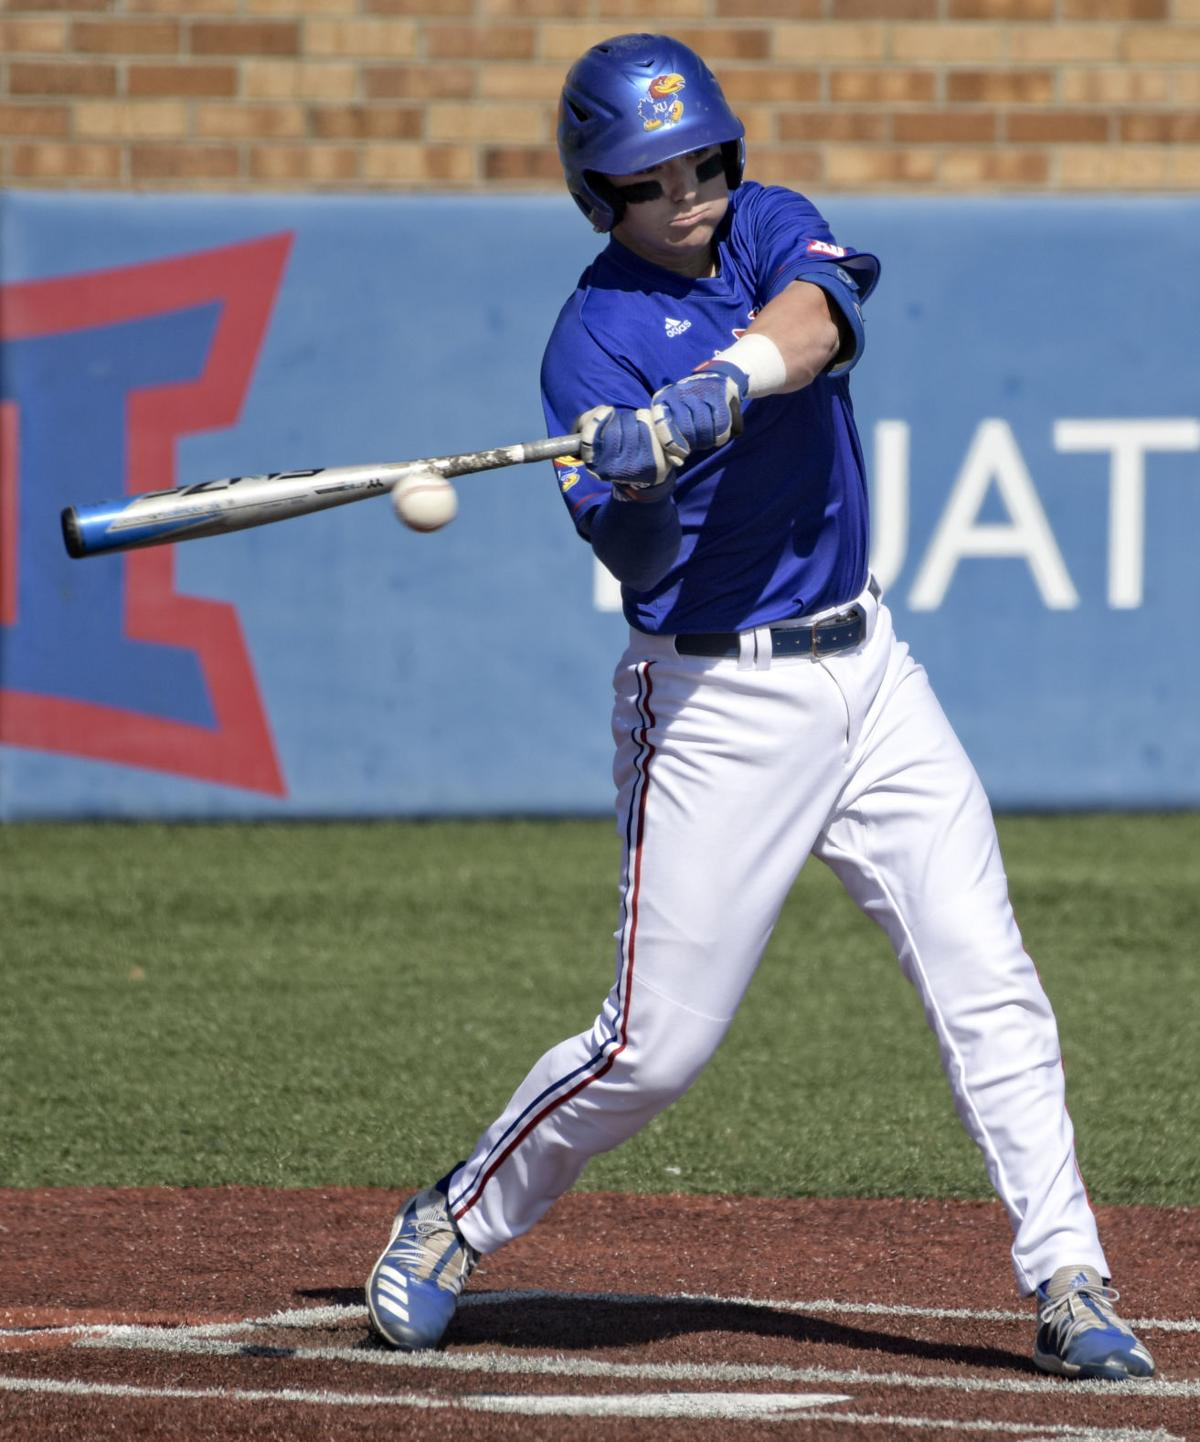 Anthony Tulimero swings to hit the baseball in Hoglund Ballpark